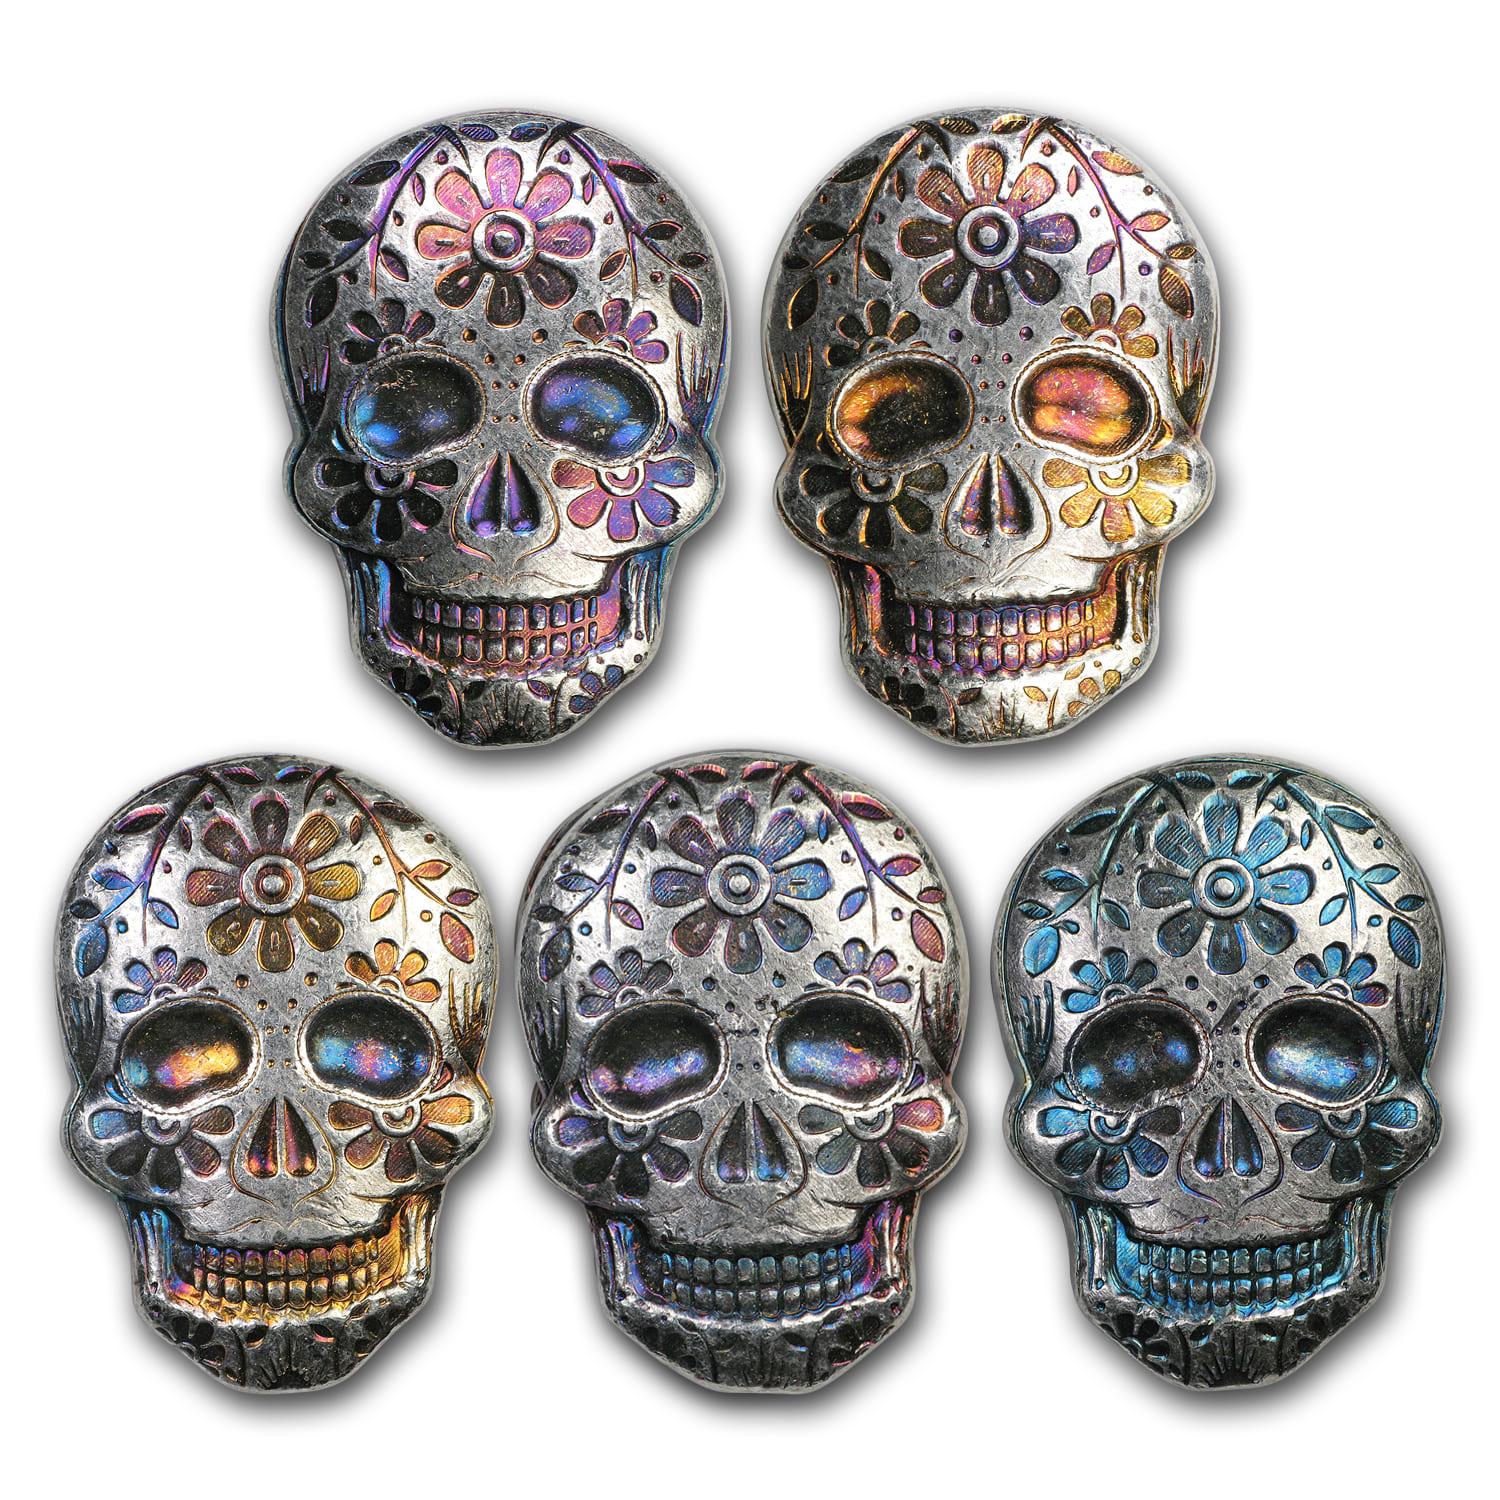 2 oz Silver Skull - Monarch Precious Metals (Day of the Dead)